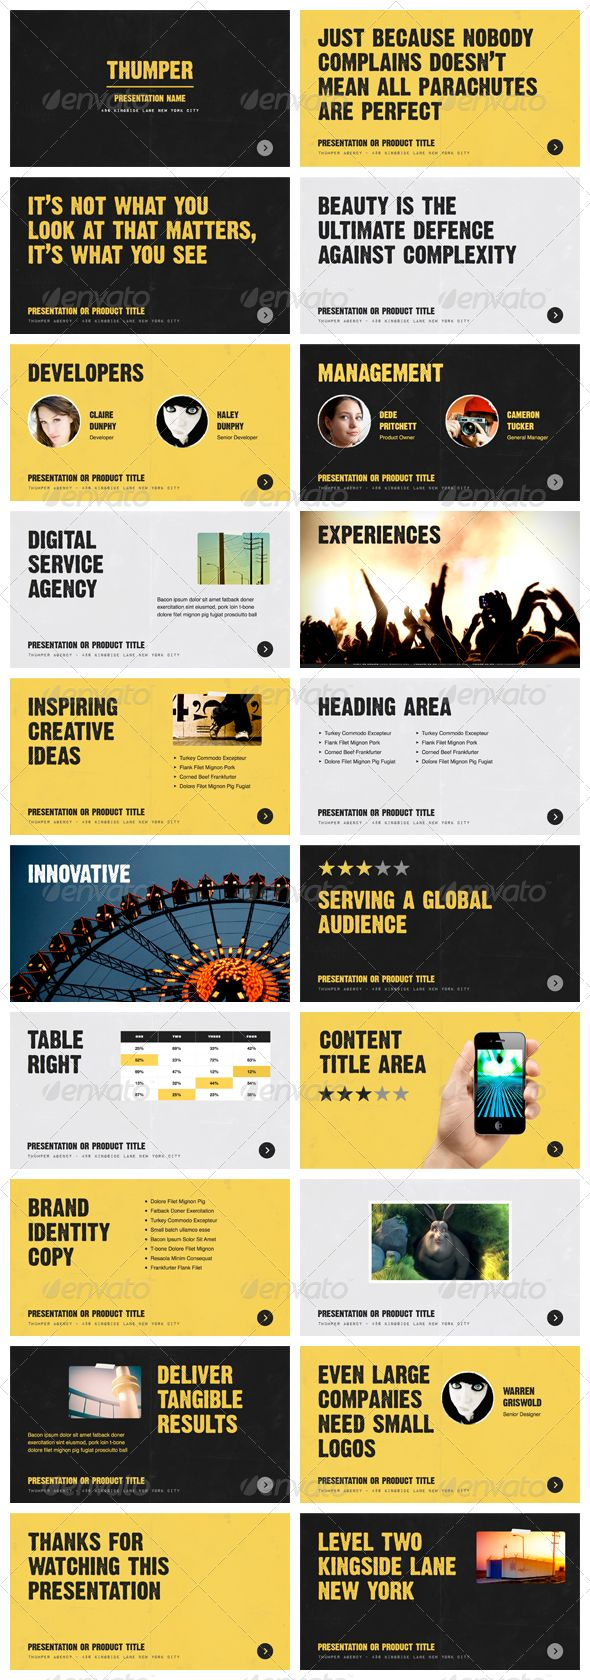 Thumper - Keynote Presentation   Presentation design layout. Inspirational presentation design samples.  Visit us at: www.sodapopmedia.com #PresentationDesign #Presentation #Multimedia #Interactive